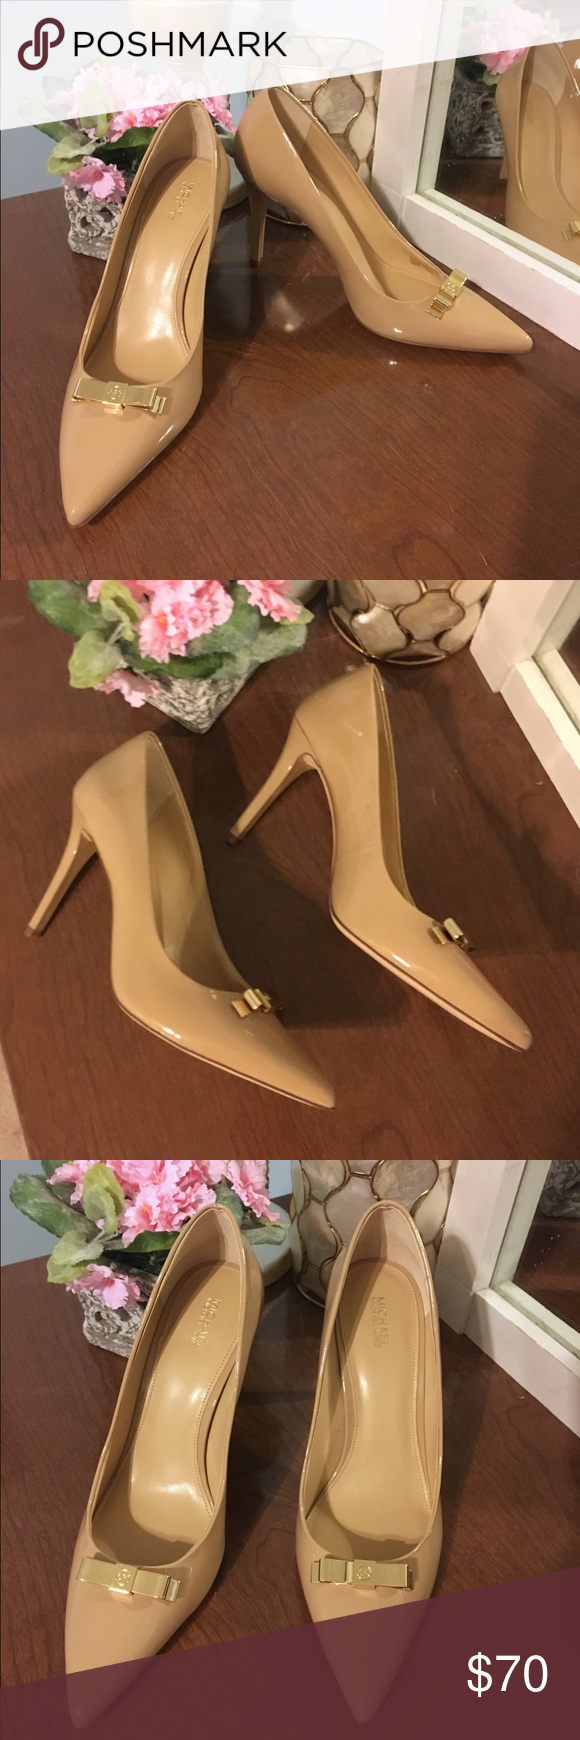 a2b543fd567c NEW Michael Kors nude pumps w gold bow